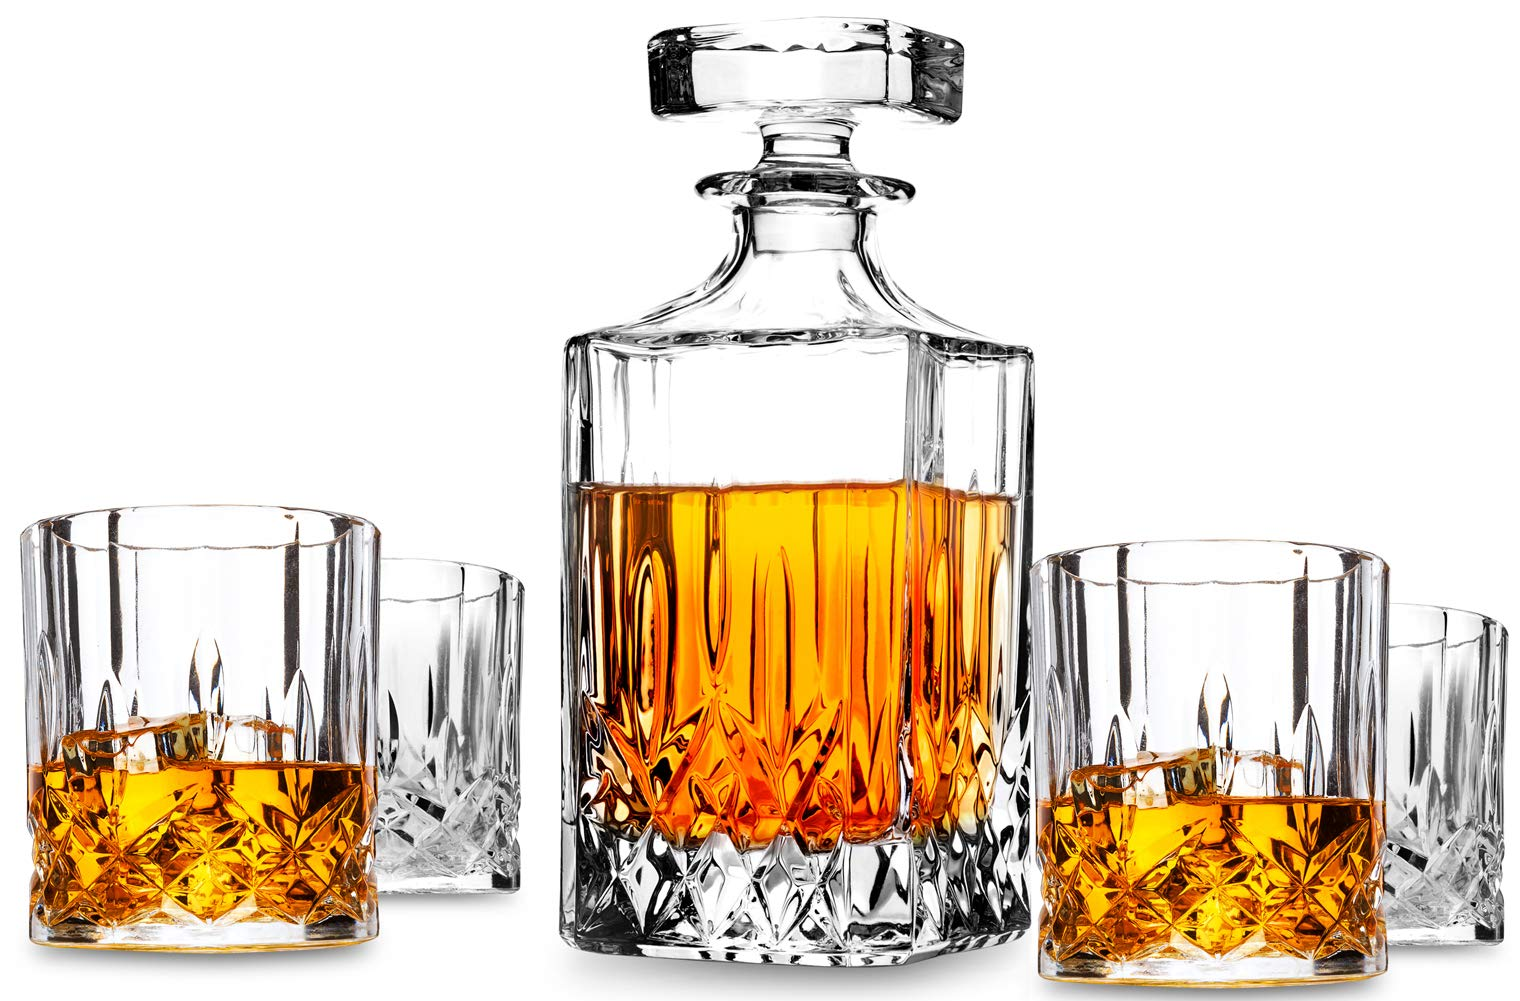 KANARS 5-Piece Ultra-Clarity Lead-Free Crystal Whiskey Decanter Set. Premium Scotch Carafe with 4 Old Fashioned Cocktail Glasses for Bourbon Tasting or Drinking